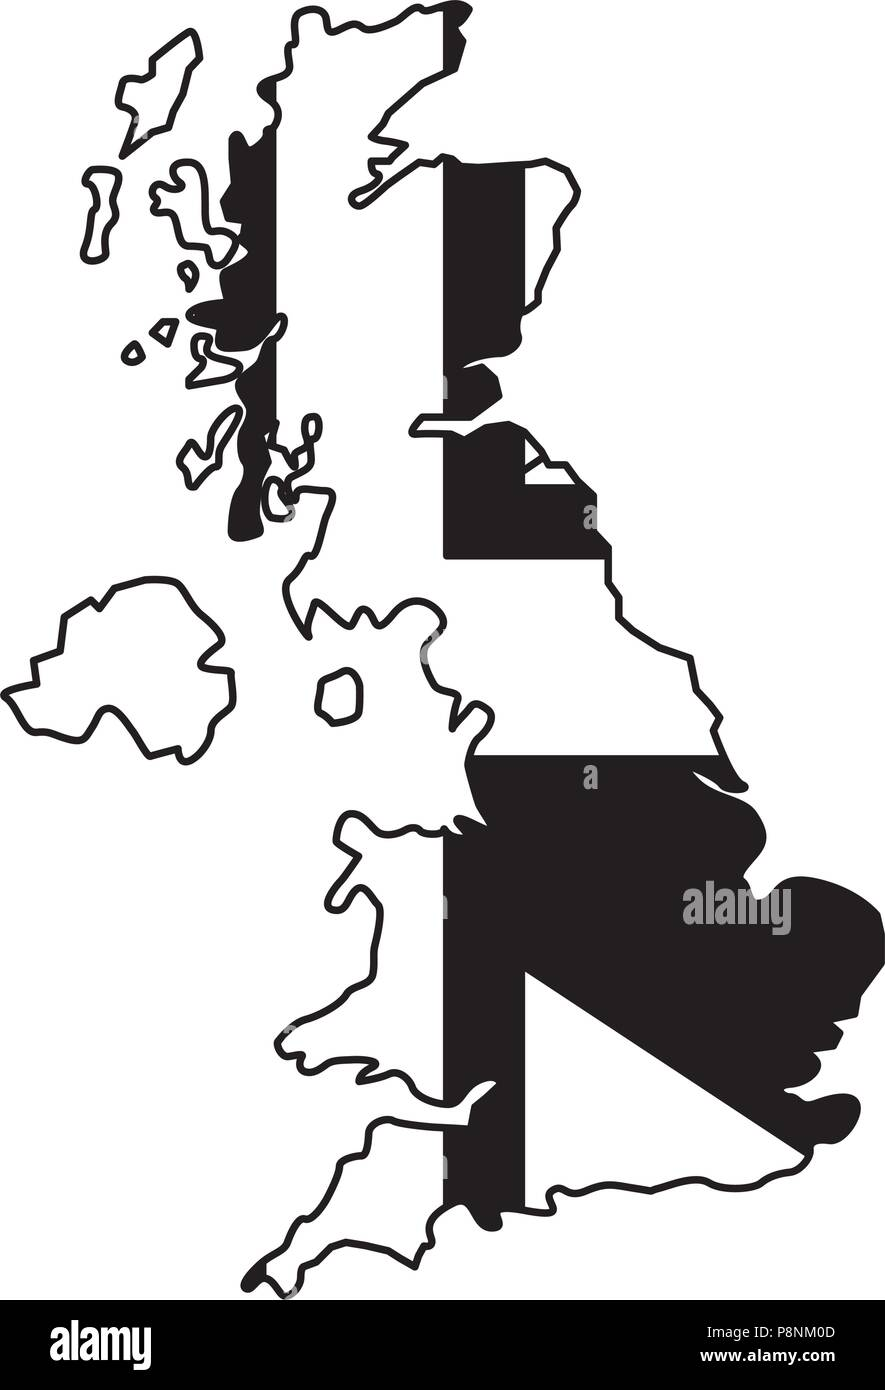 untied kingdom flag in map country vector illustration black and white - Stock Vector